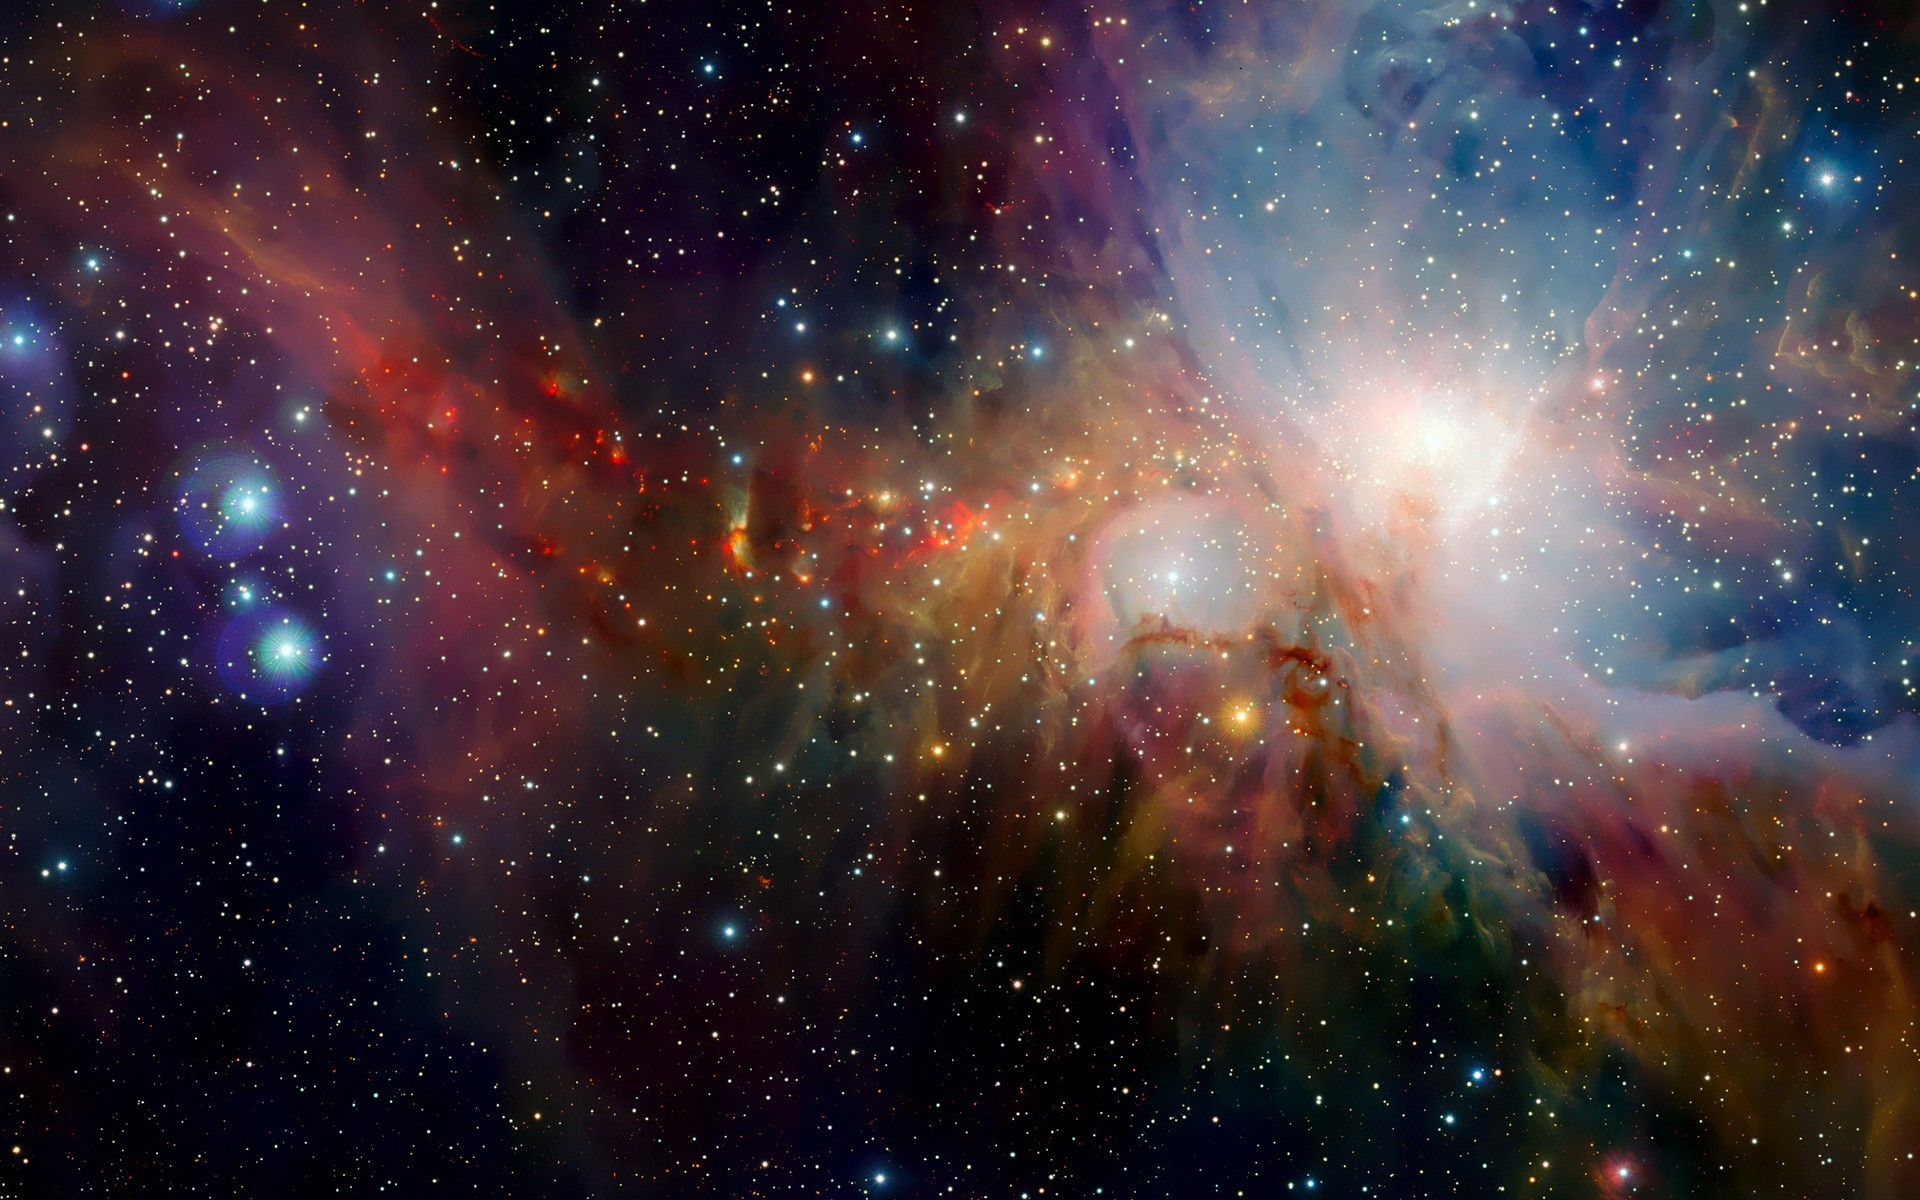 Ios 7 outer space stars wallpaper wallpapers and images 1920x1200